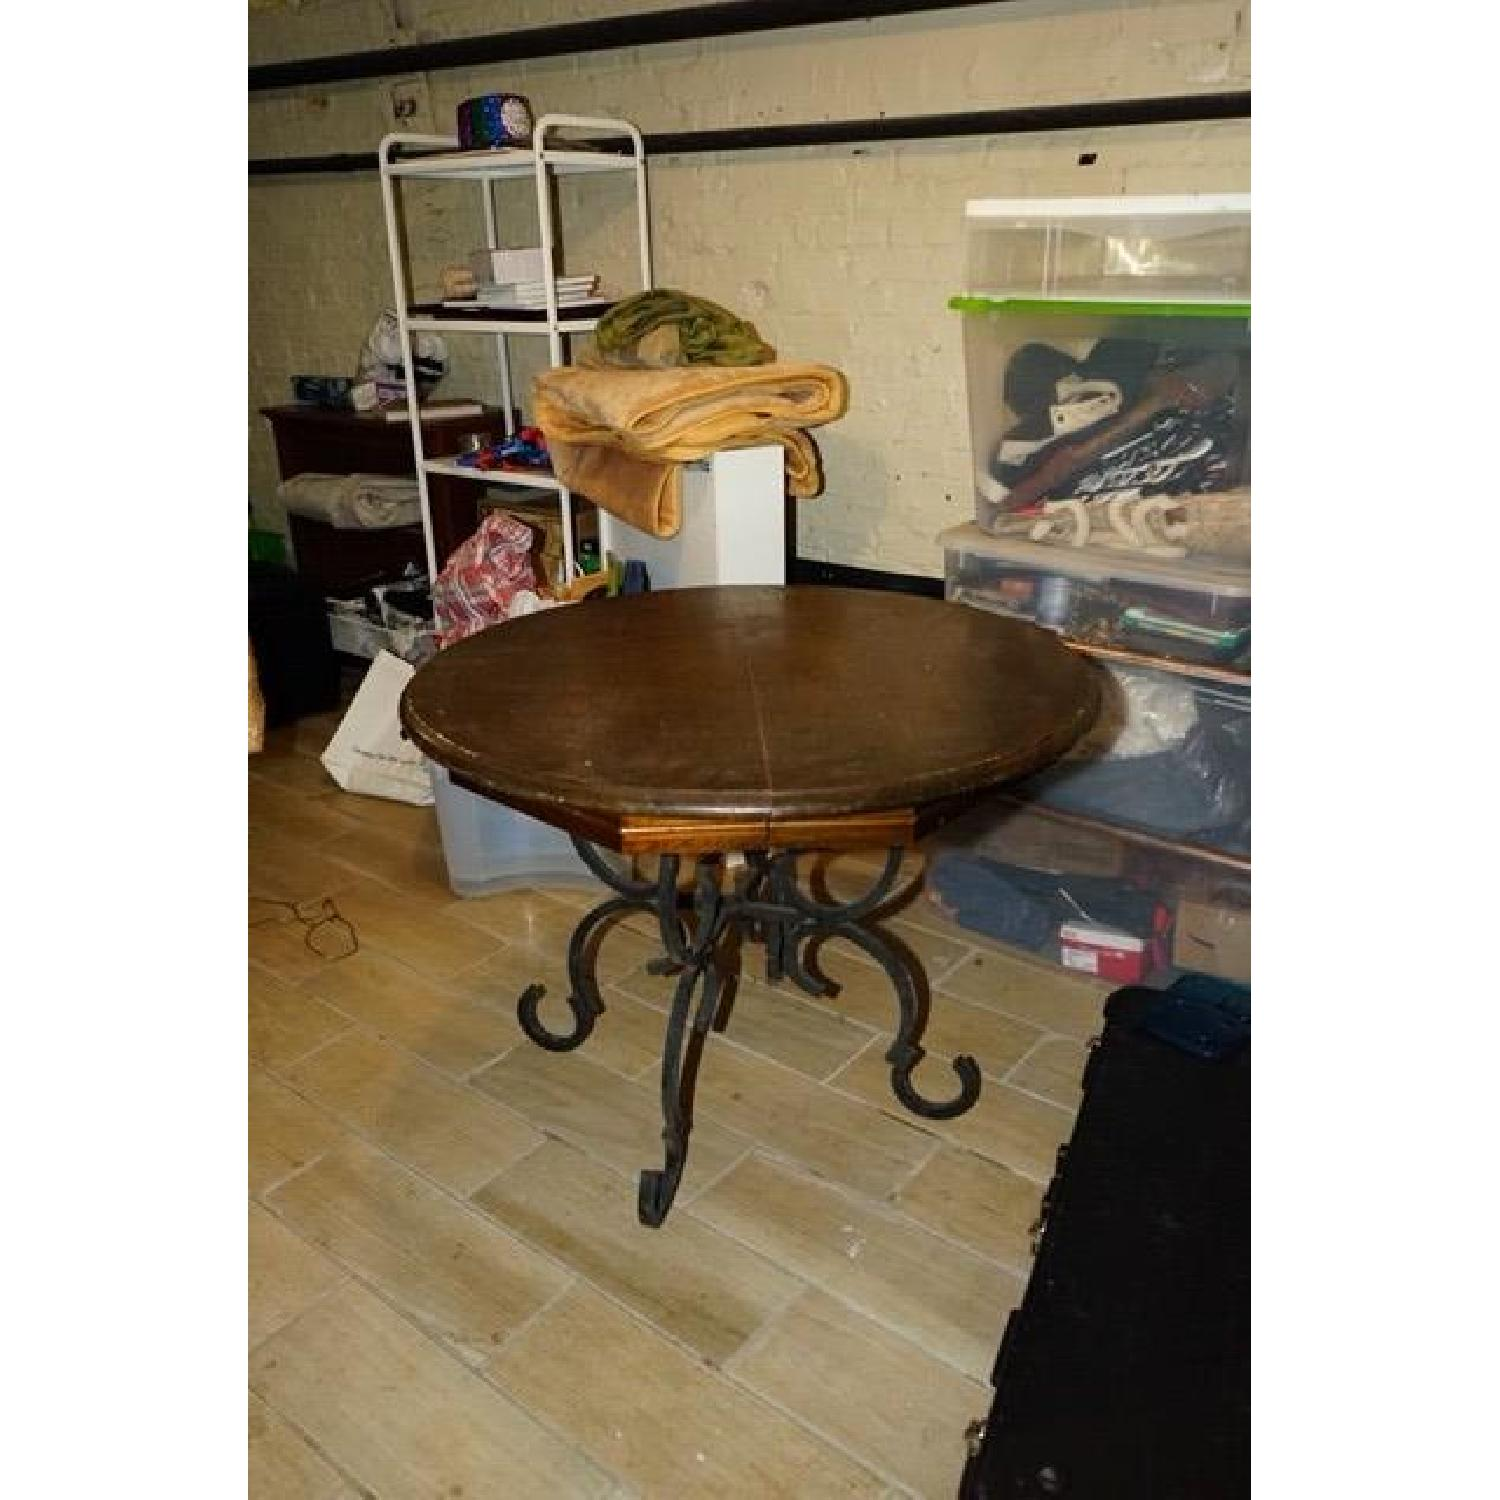 Vintage Extendable Dining Table w/ Wrought Iron Base - image-1